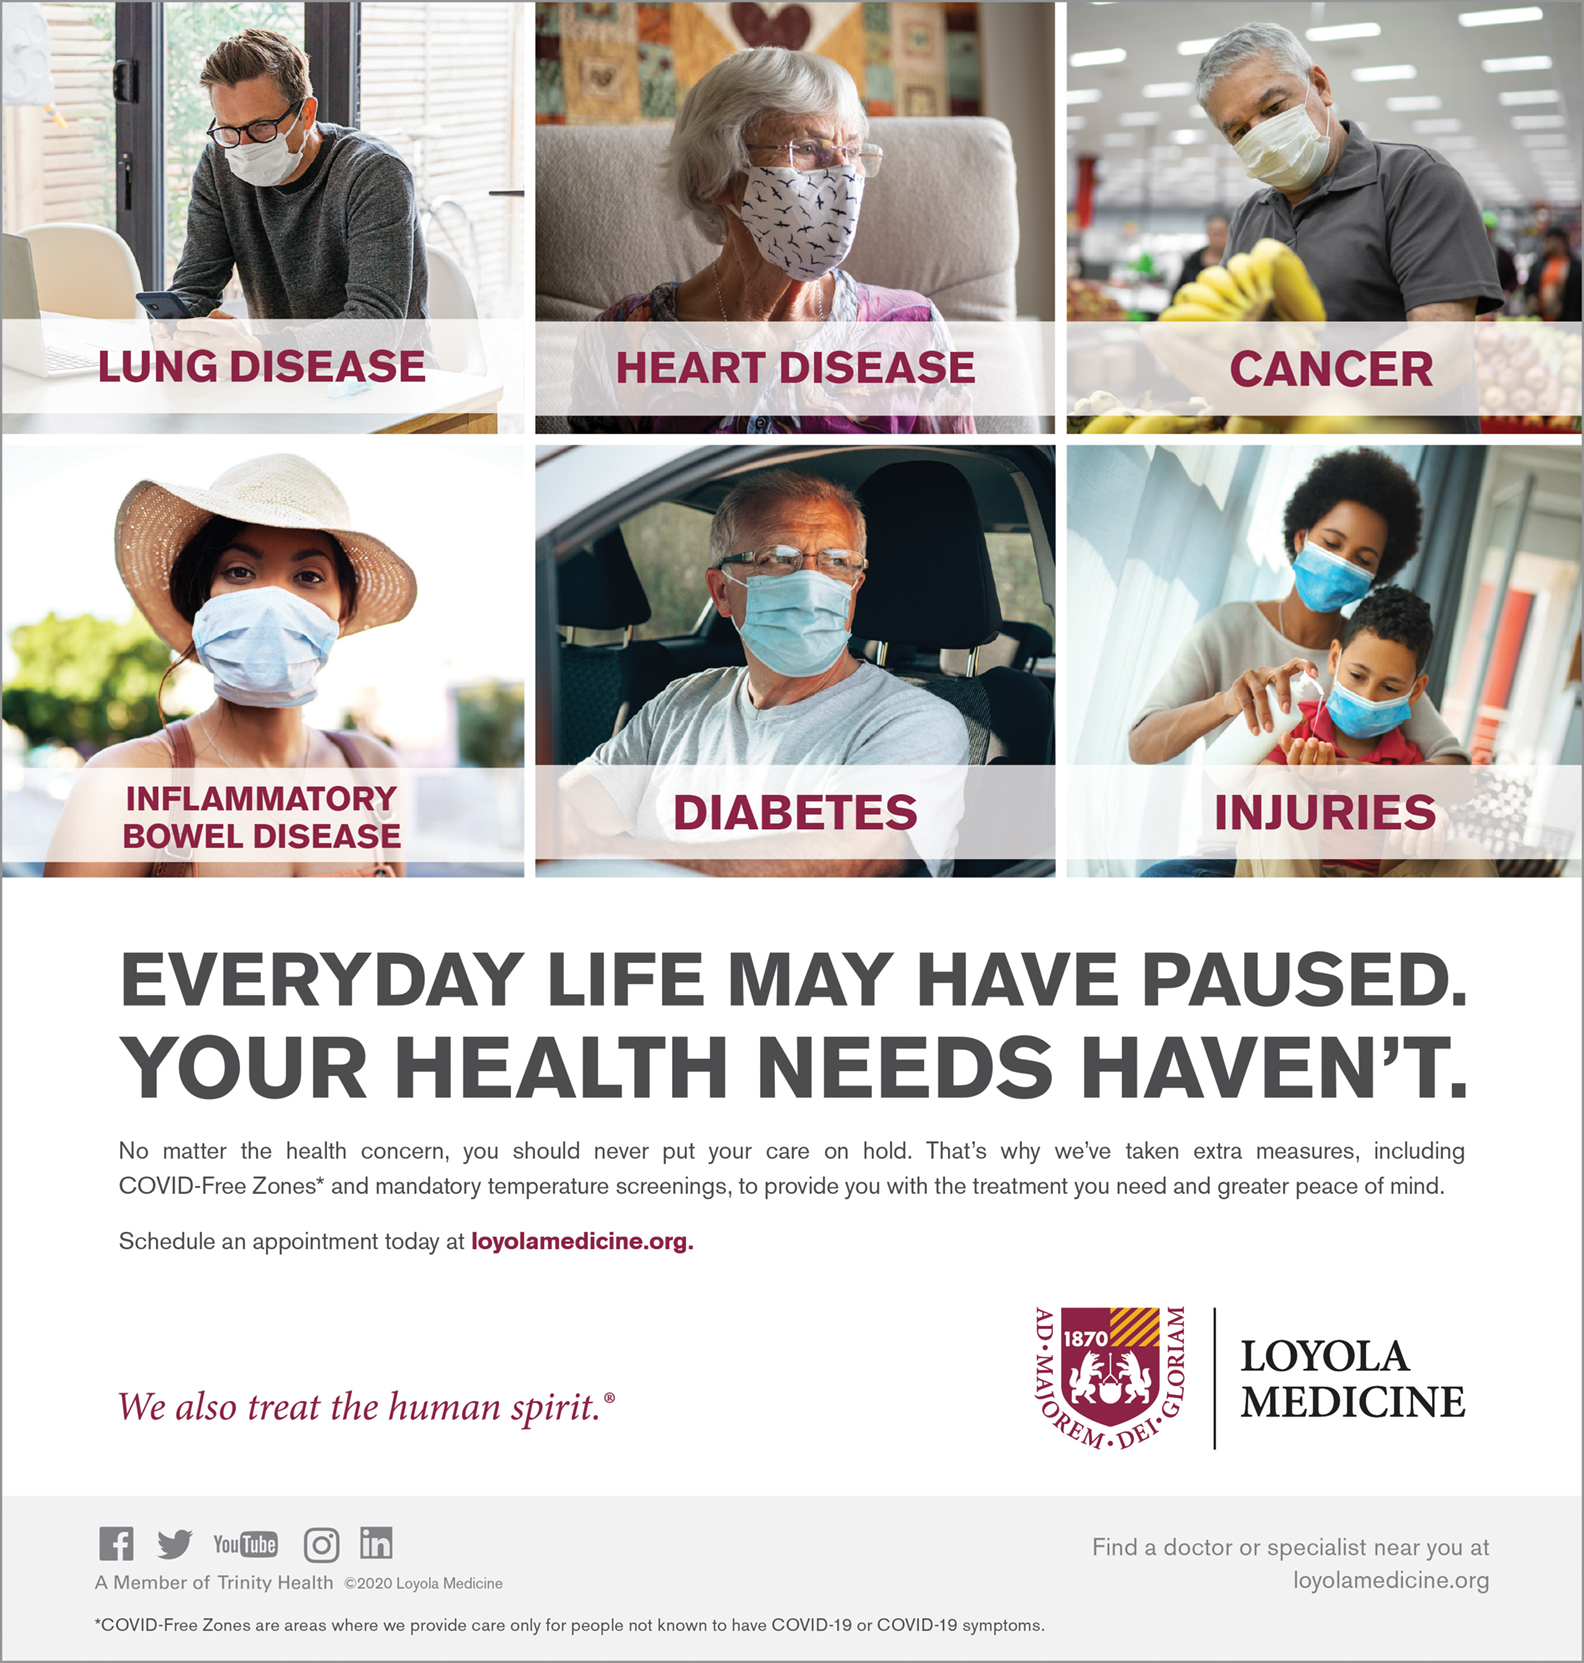 An ad by Loyola Medicine in the Chicago area telling patients they shouldn't put care on hold during the COVID-19 pandemic.